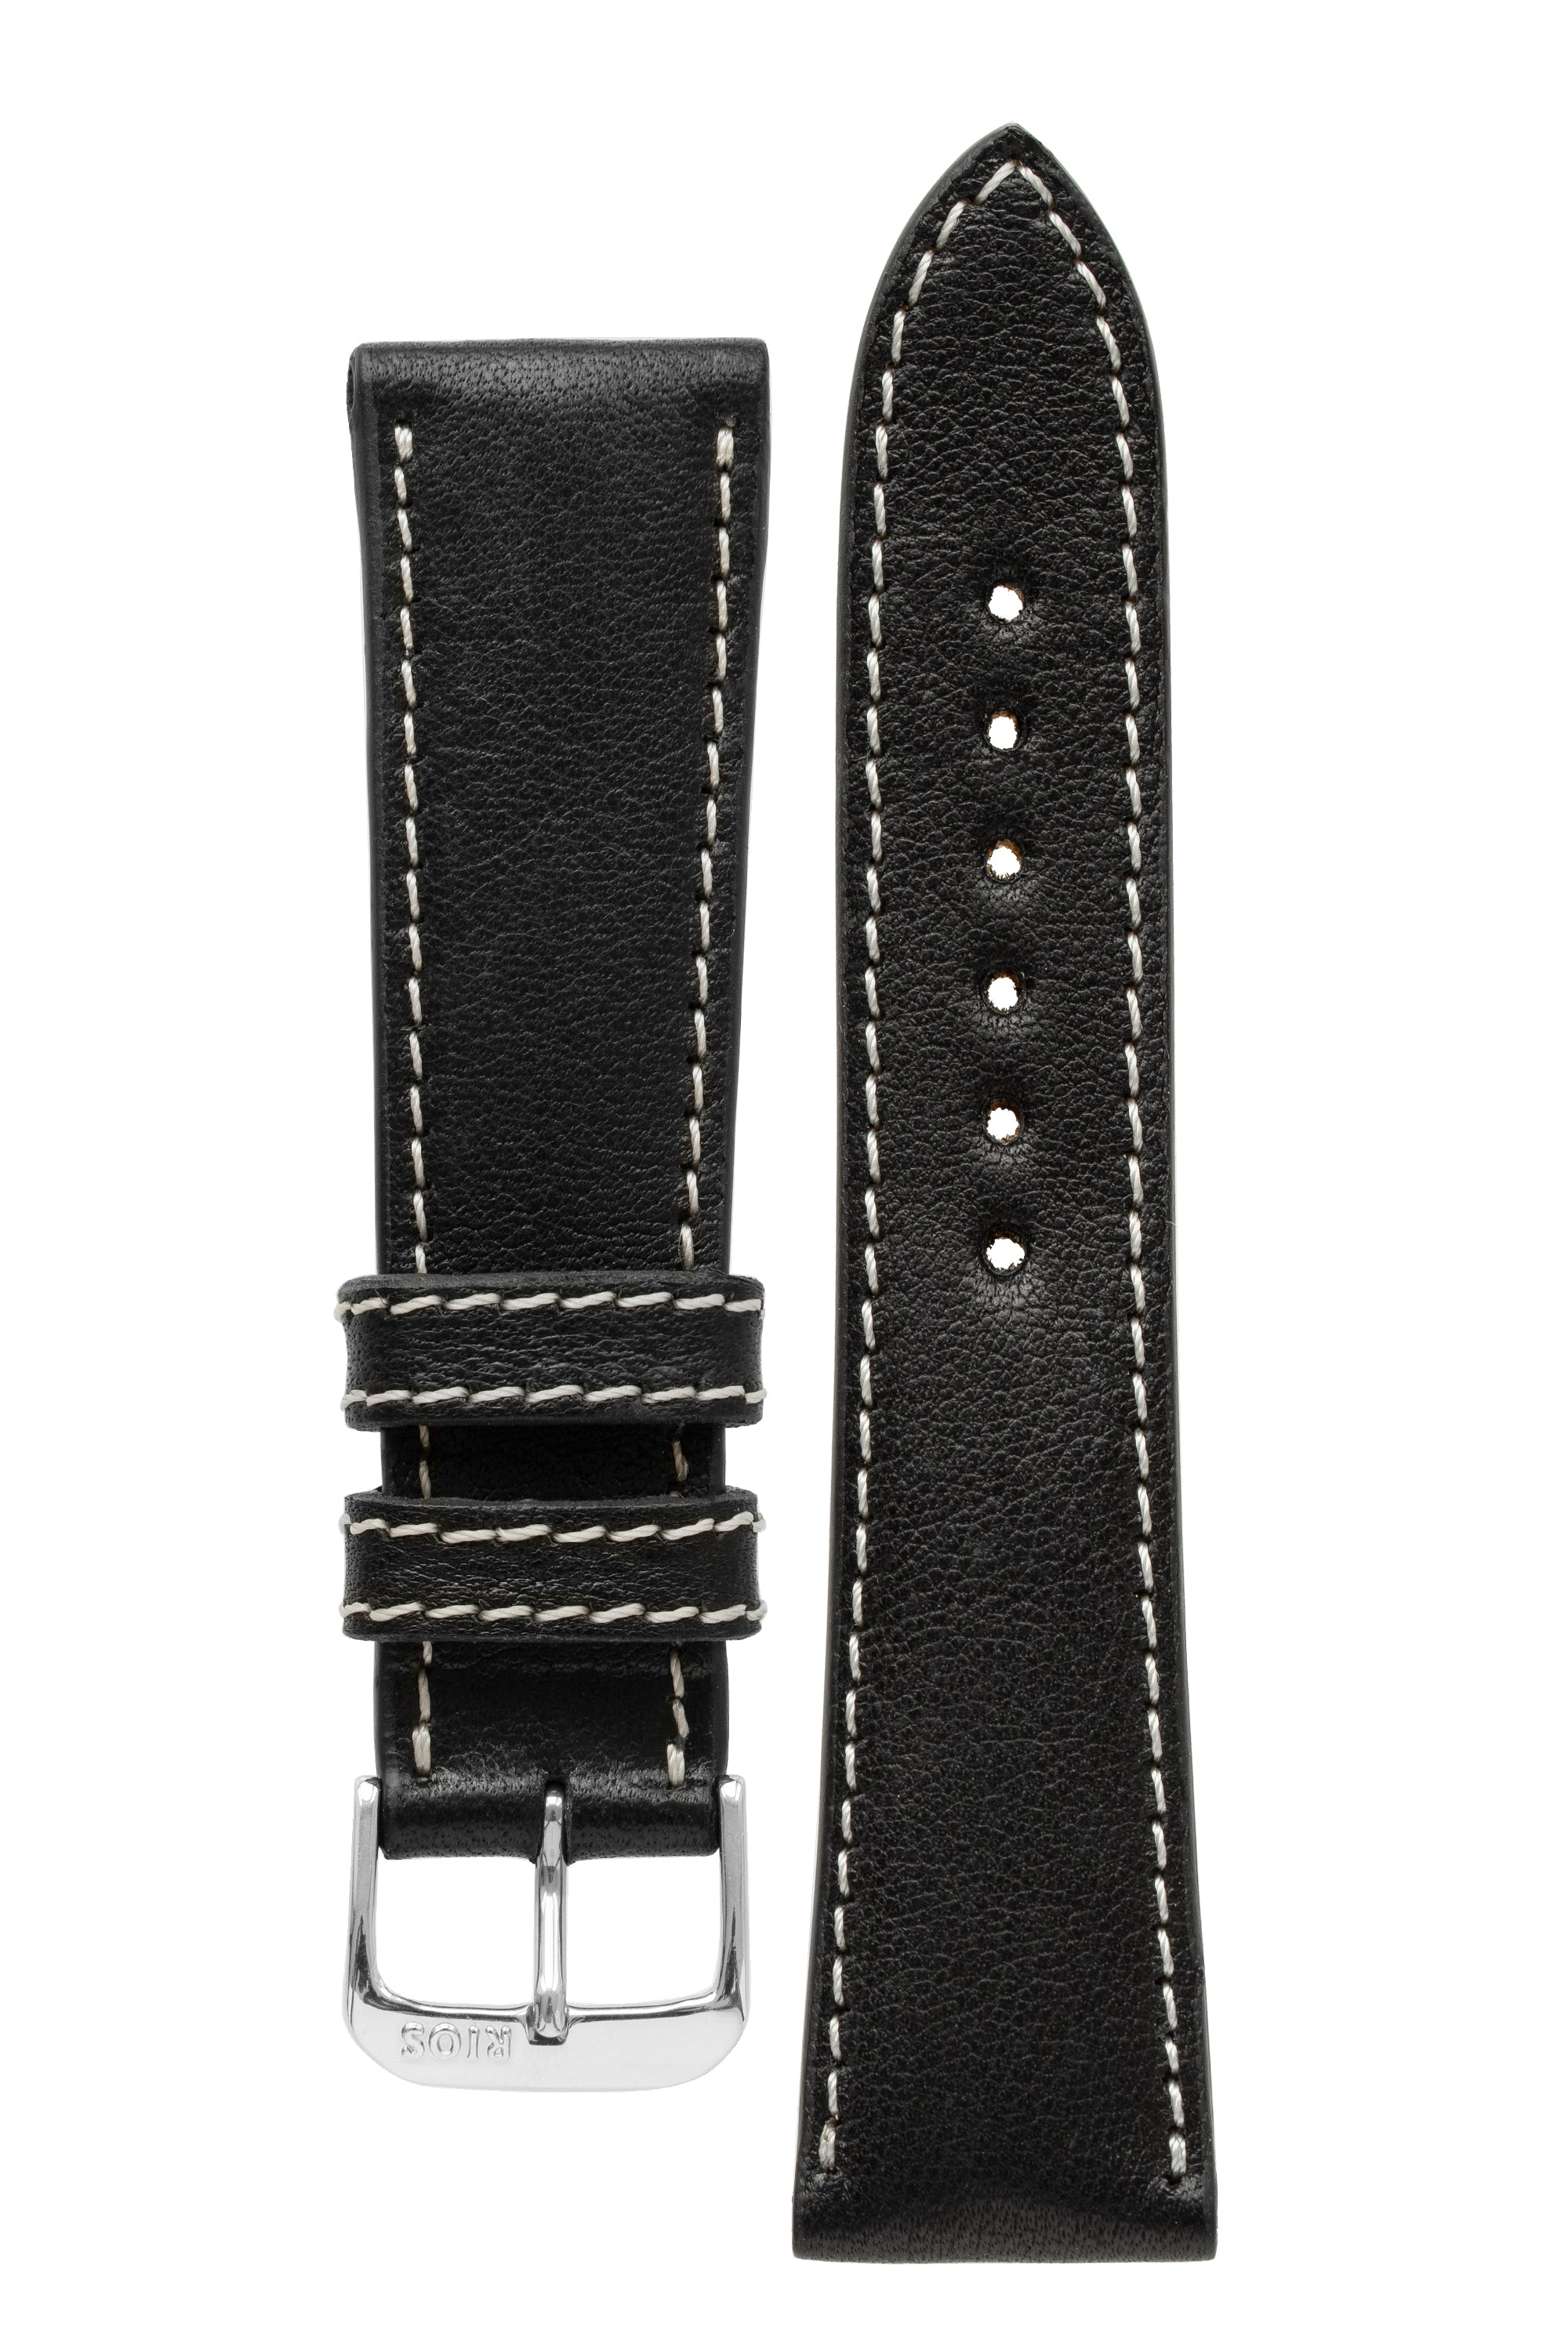 Rios1931 WEILHEIM Organic Leather Watch Strap in BLACK